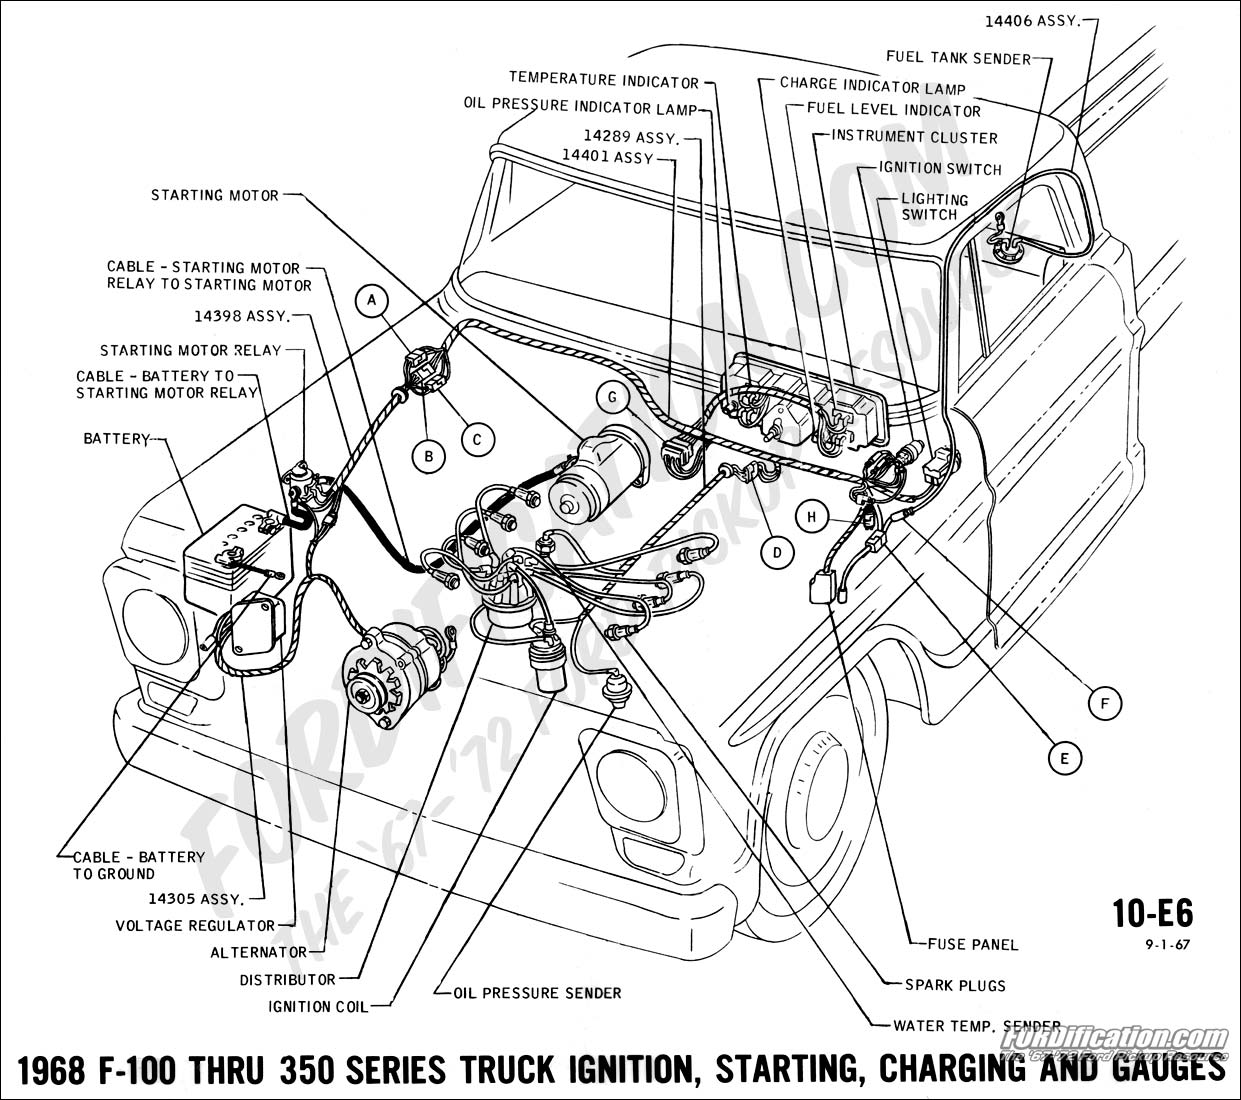 1969 Corvette Wiring Diagram System Diy Enthusiasts Diagrams 1968 Engine Harness Ford Truck Technical Drawings And Schematics Section H Rh Fordification Com